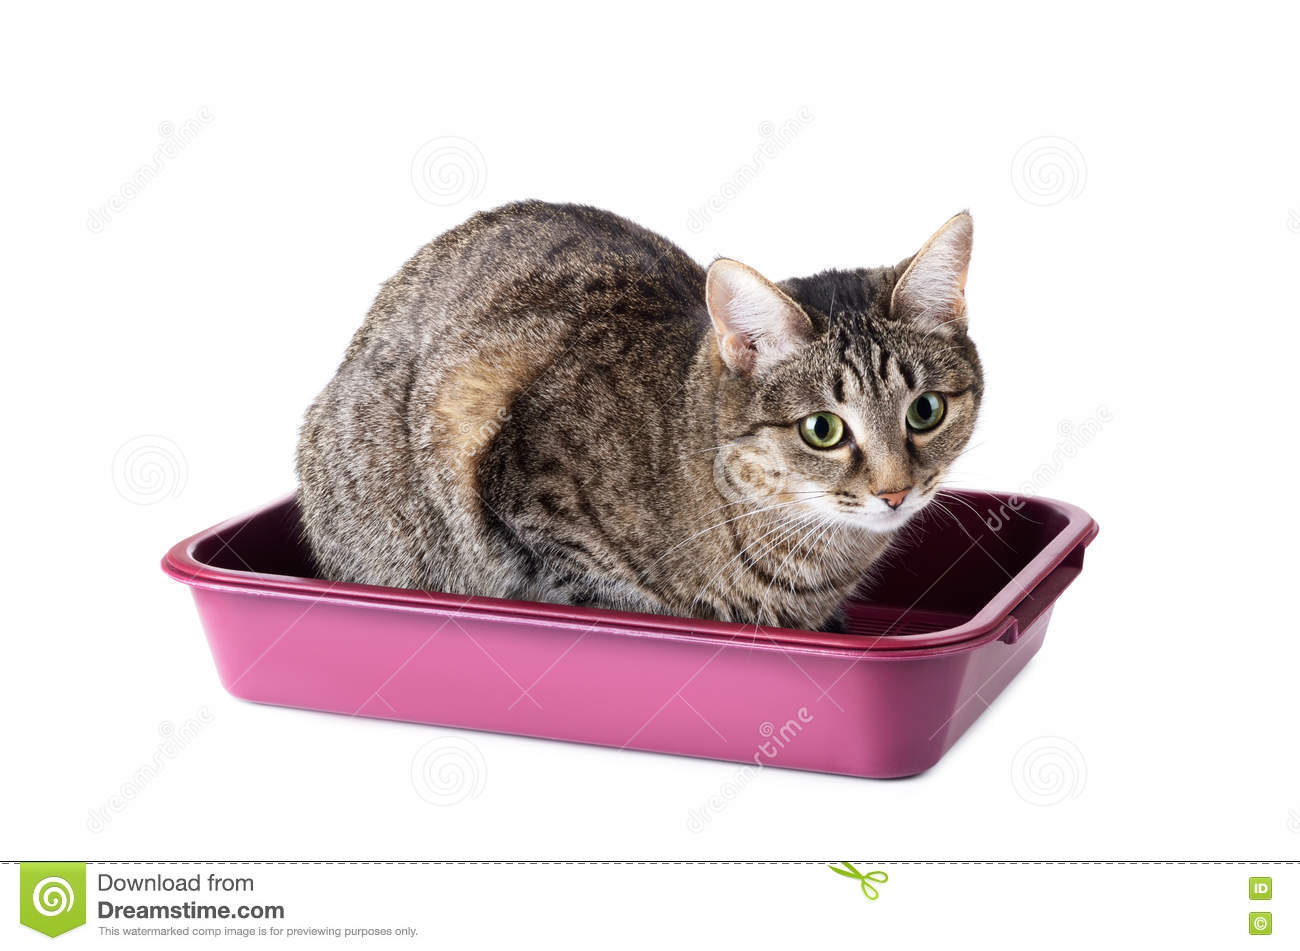 Download Striped Cat Sitting In Cat Toilet Stock Photo - Image of filler, object: 77407342